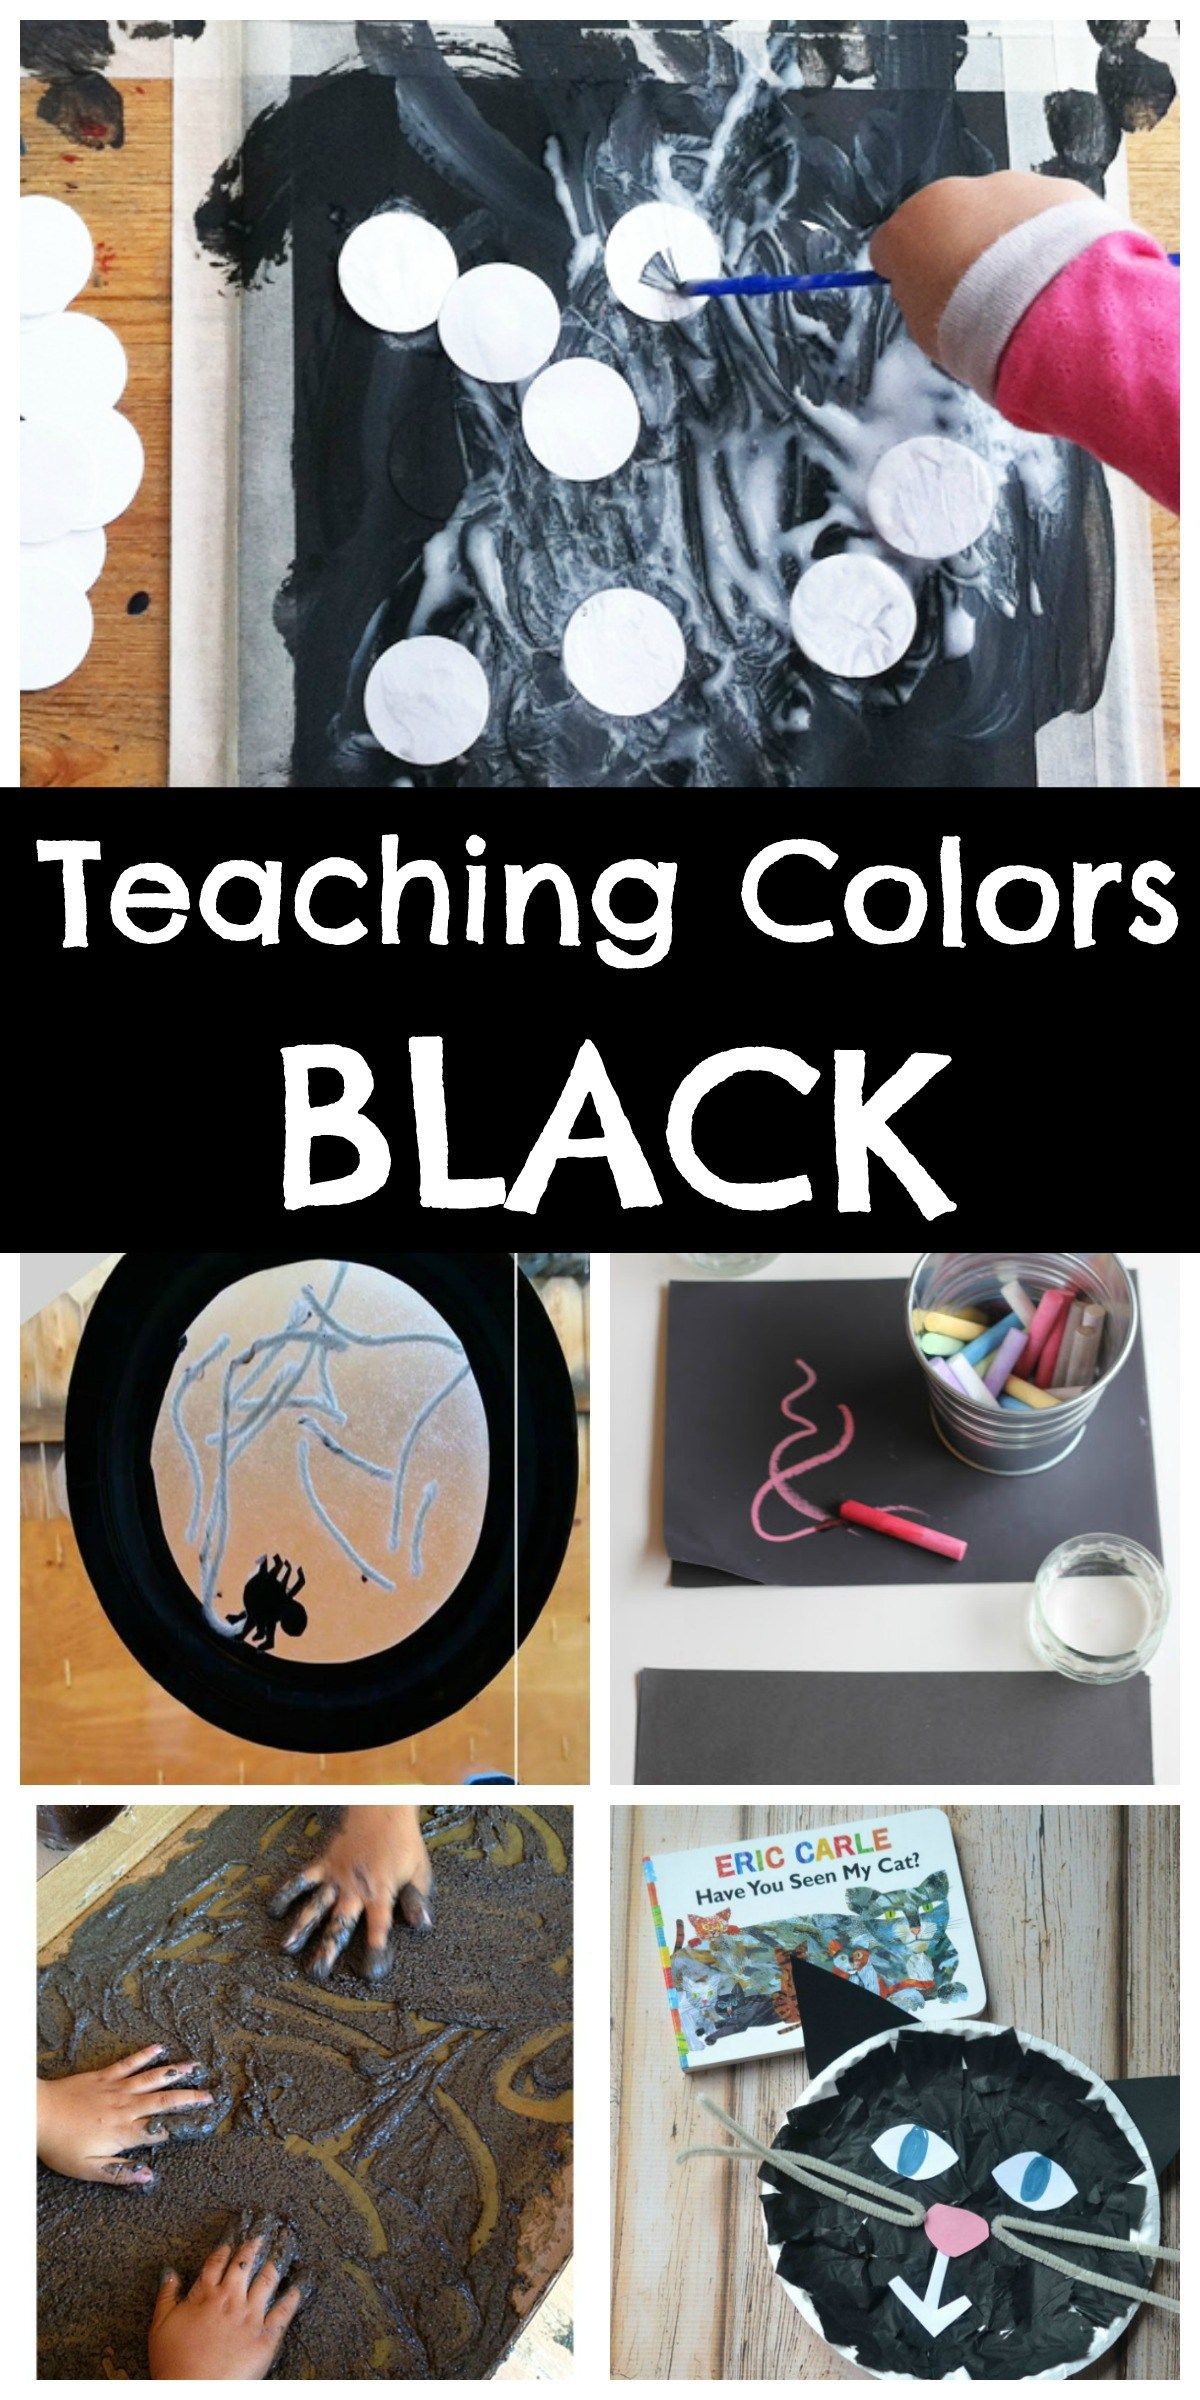 Teaching colors to preschoolers black crafts songs activities and sensory fun to teach the color black love it all